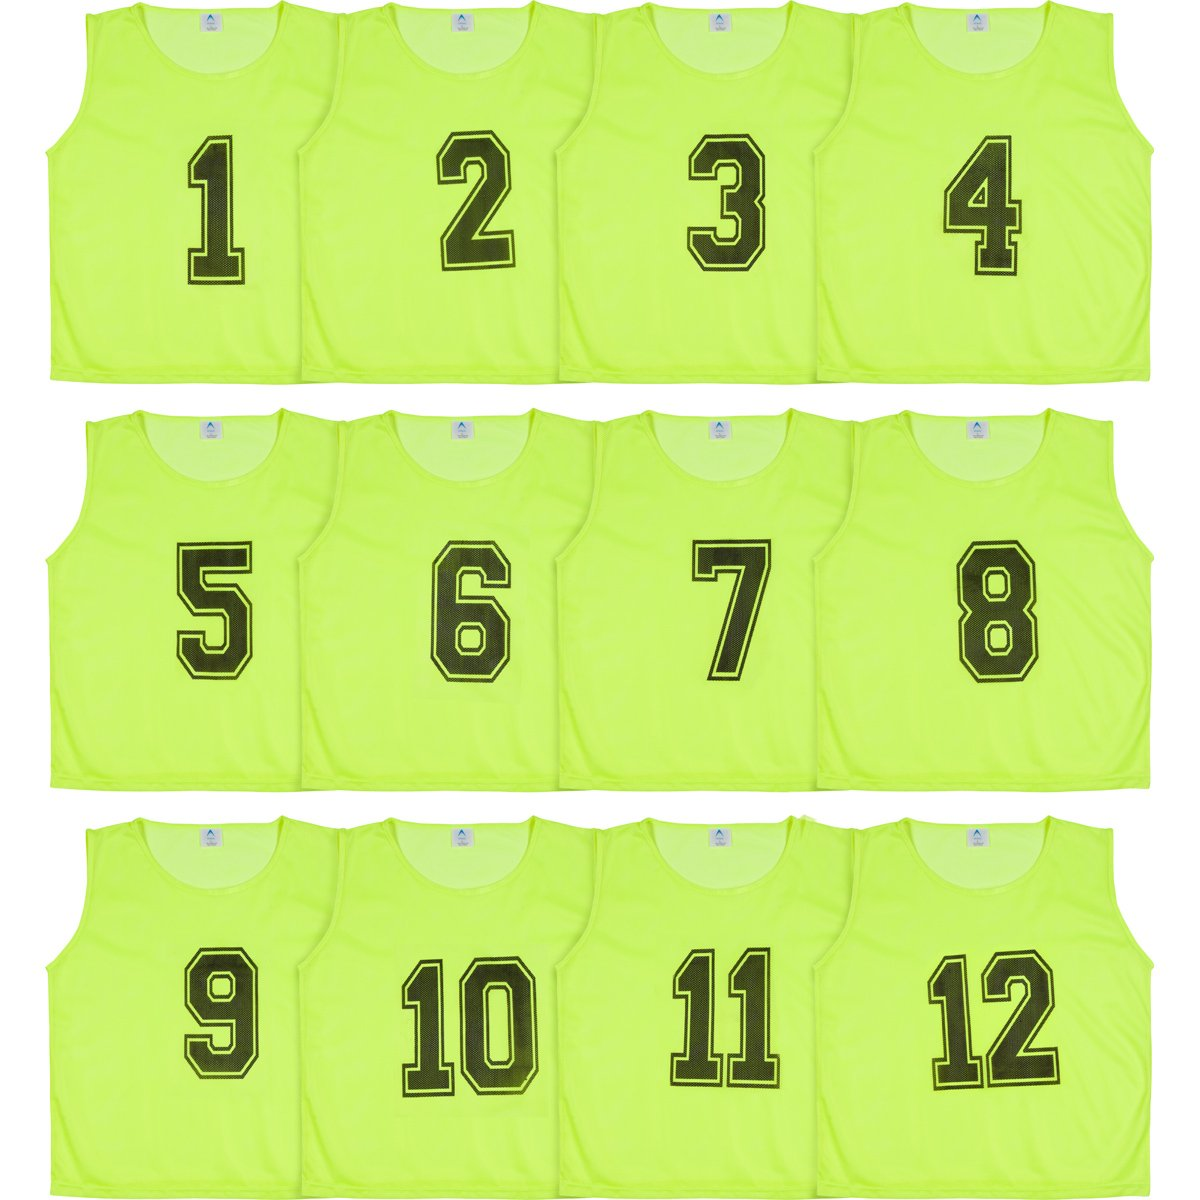 Athllete Set of 12- Scrimmage Vest/Pinnies/Team Practice Jerseys with Free Carry Bag. Sizes for Children, Youth, Adult and Adult XXL (Neon Yellow Numbered, XX-Large) by Athllete